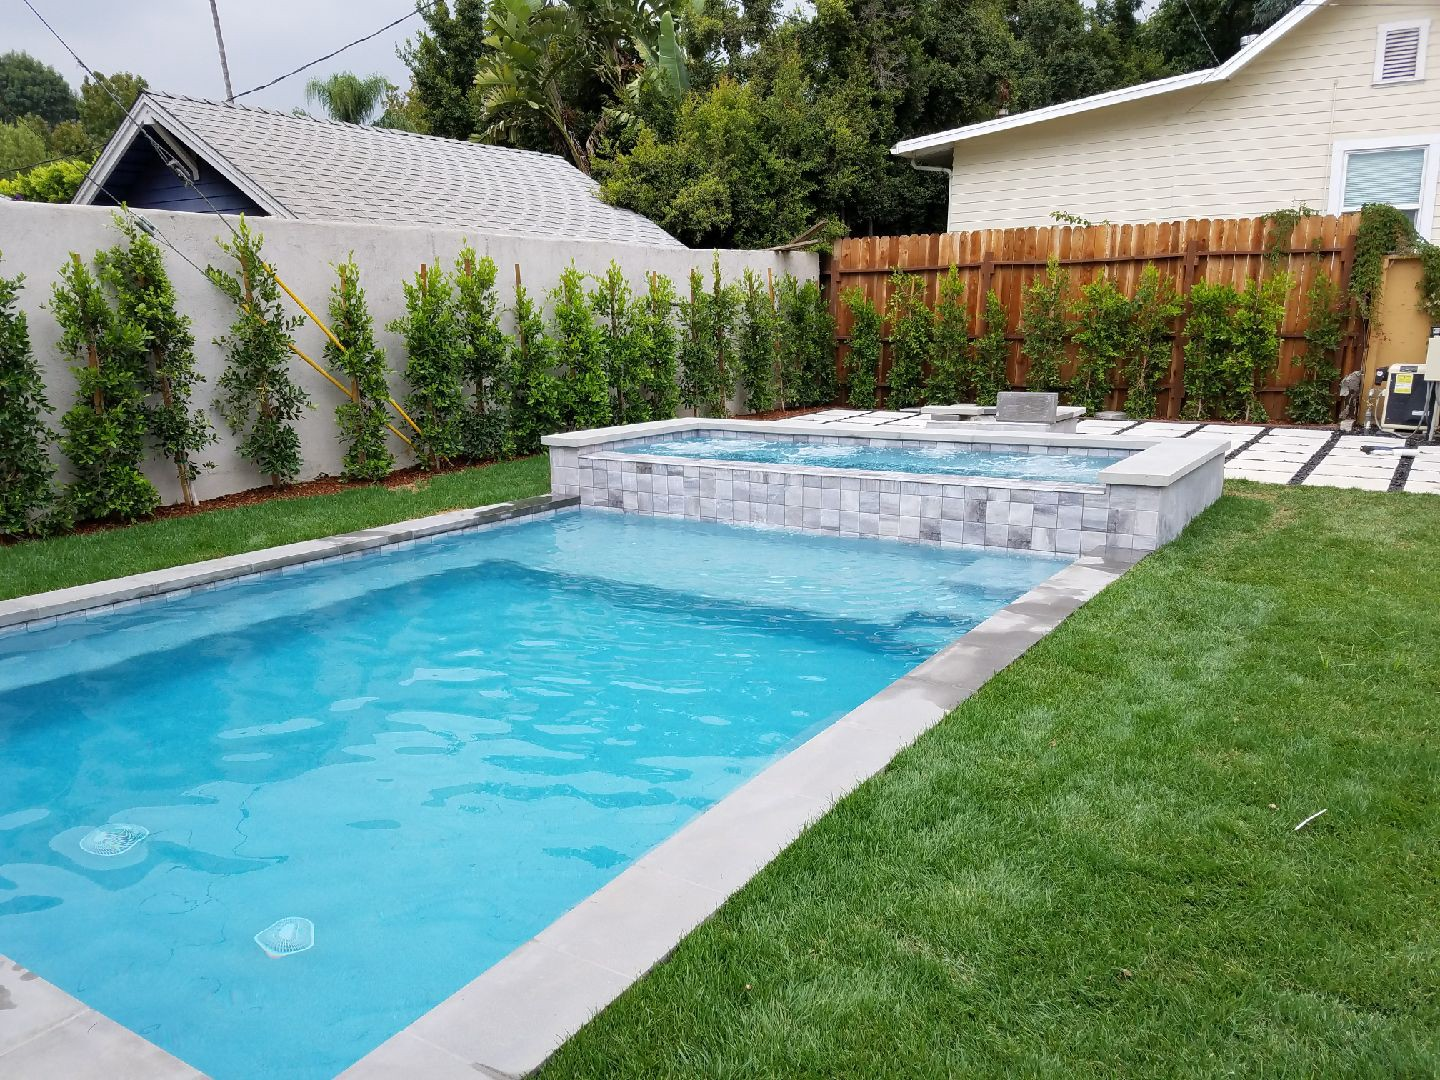 Steps To Follow When Deciding To Build A Swimming Pool